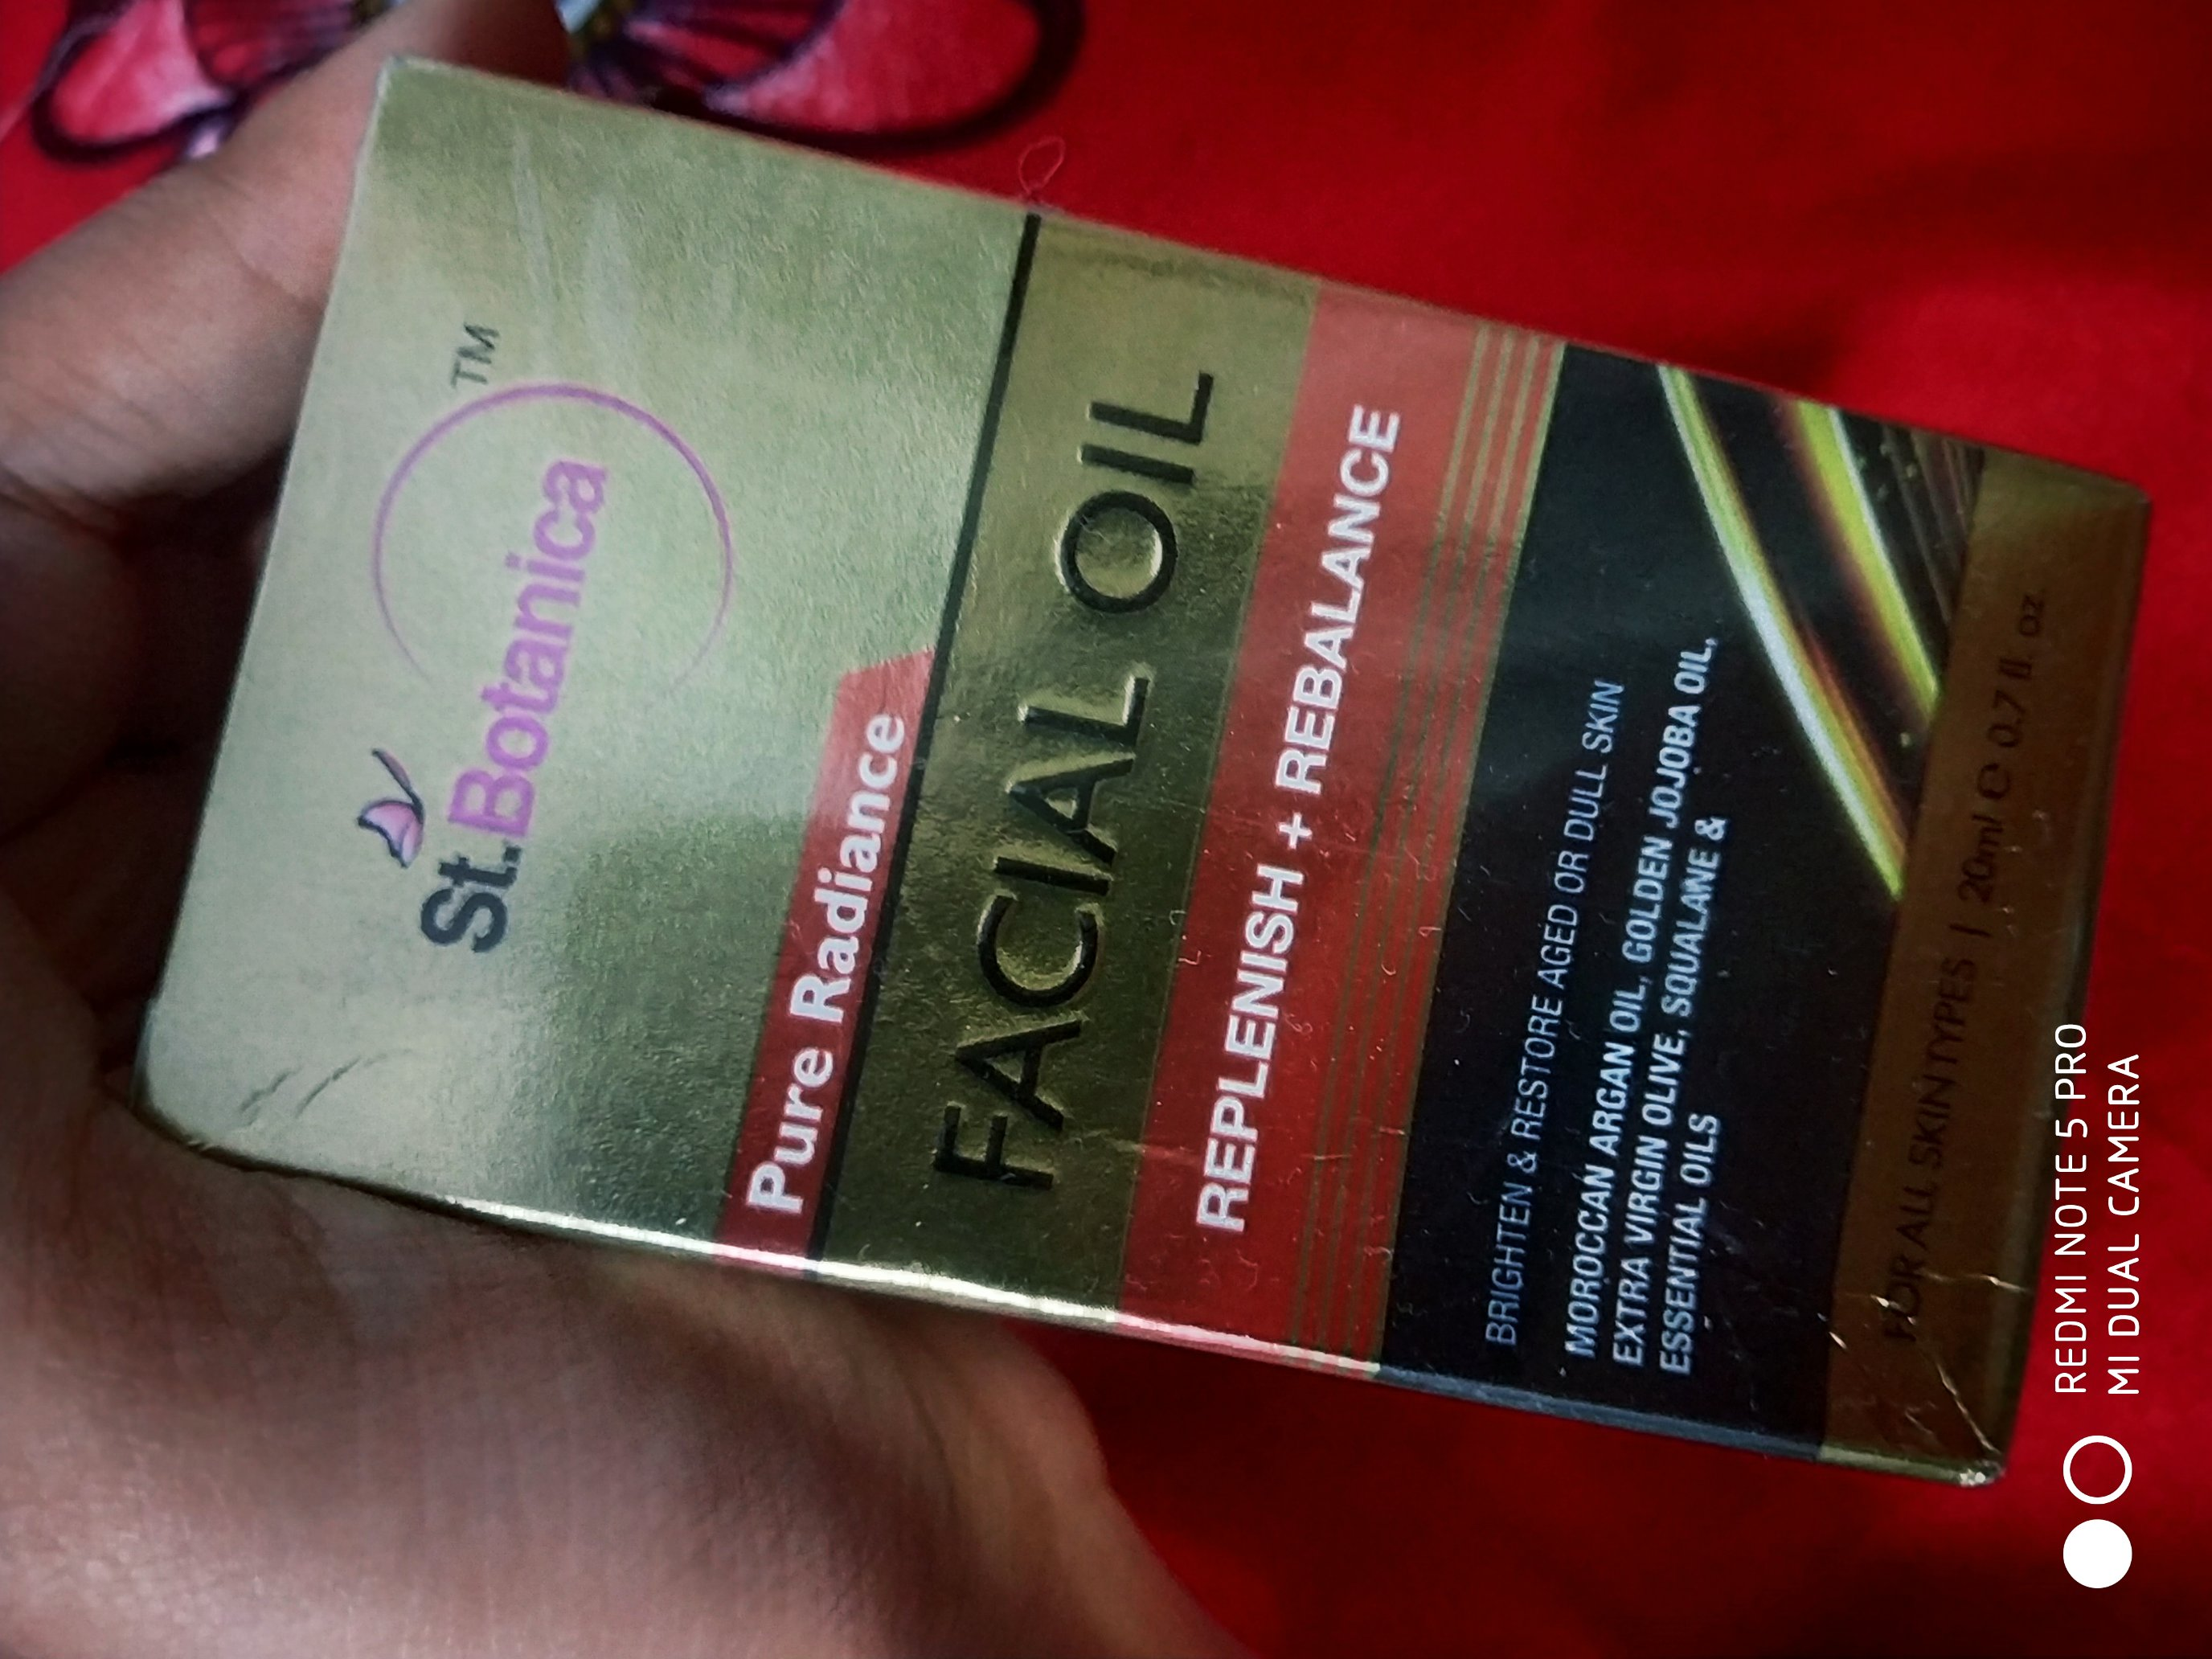 StBotanica Pure Radiance Facial Oil-Highly recommendee-By shreyagarwal